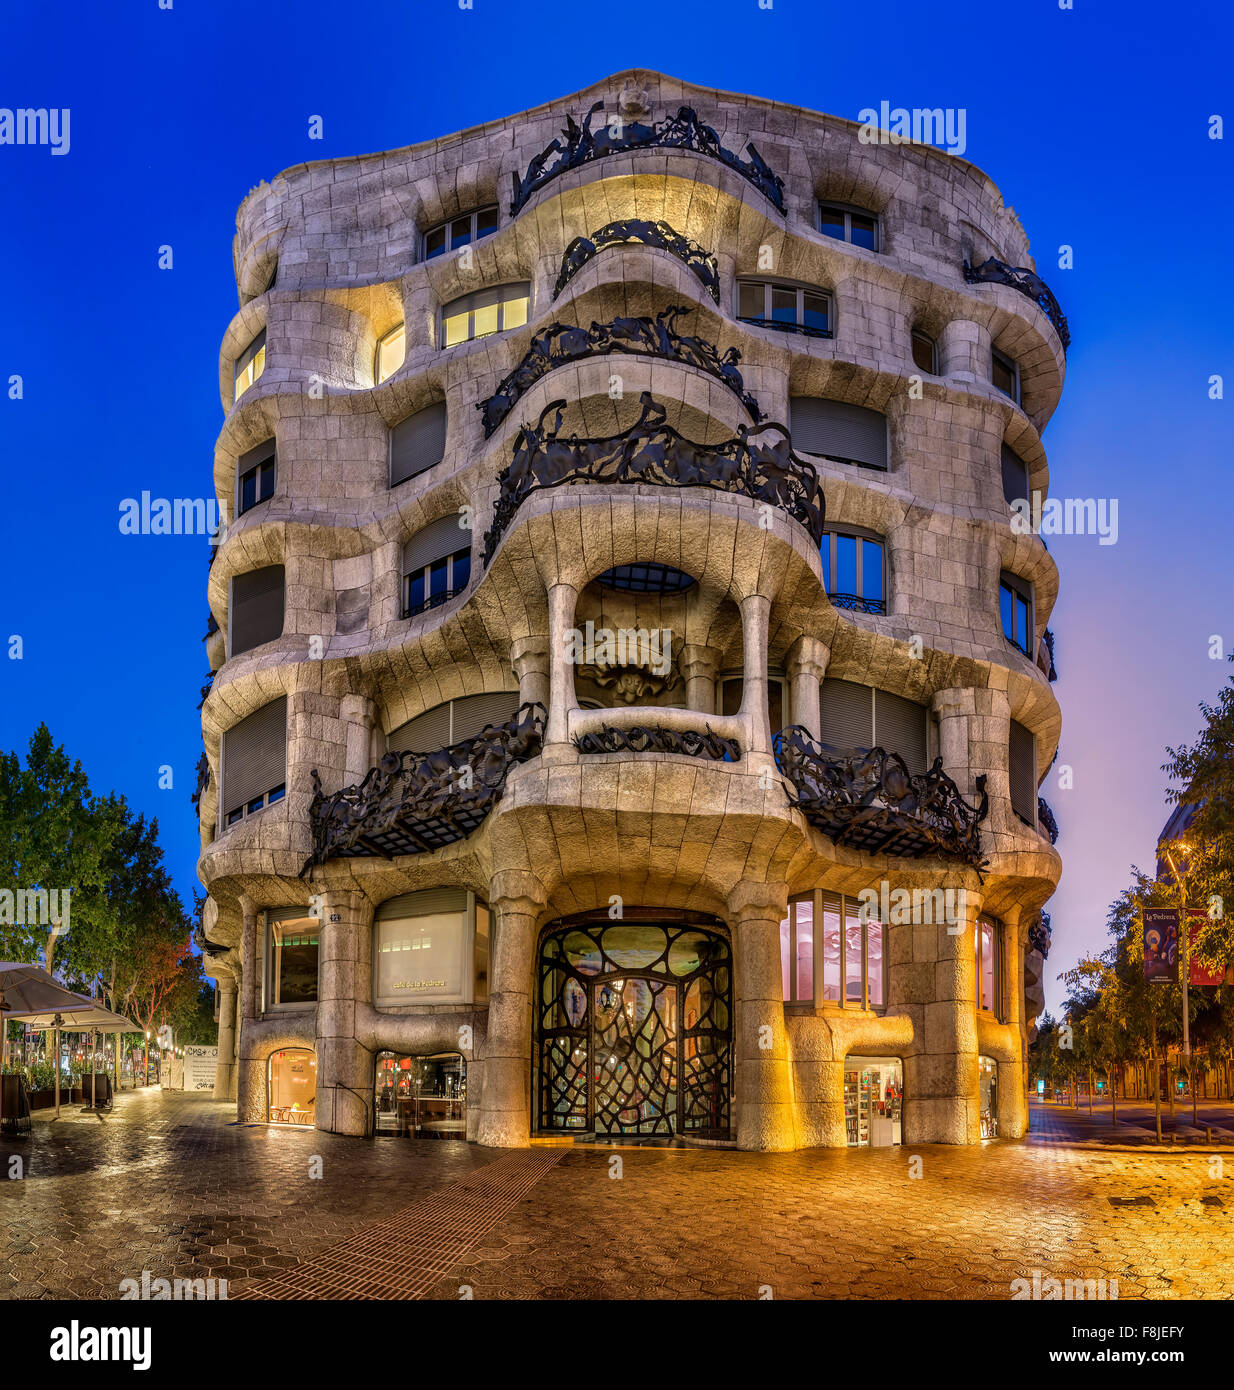 antonio gaudi stockfotos antonio gaudi bilder alamy. Black Bedroom Furniture Sets. Home Design Ideas